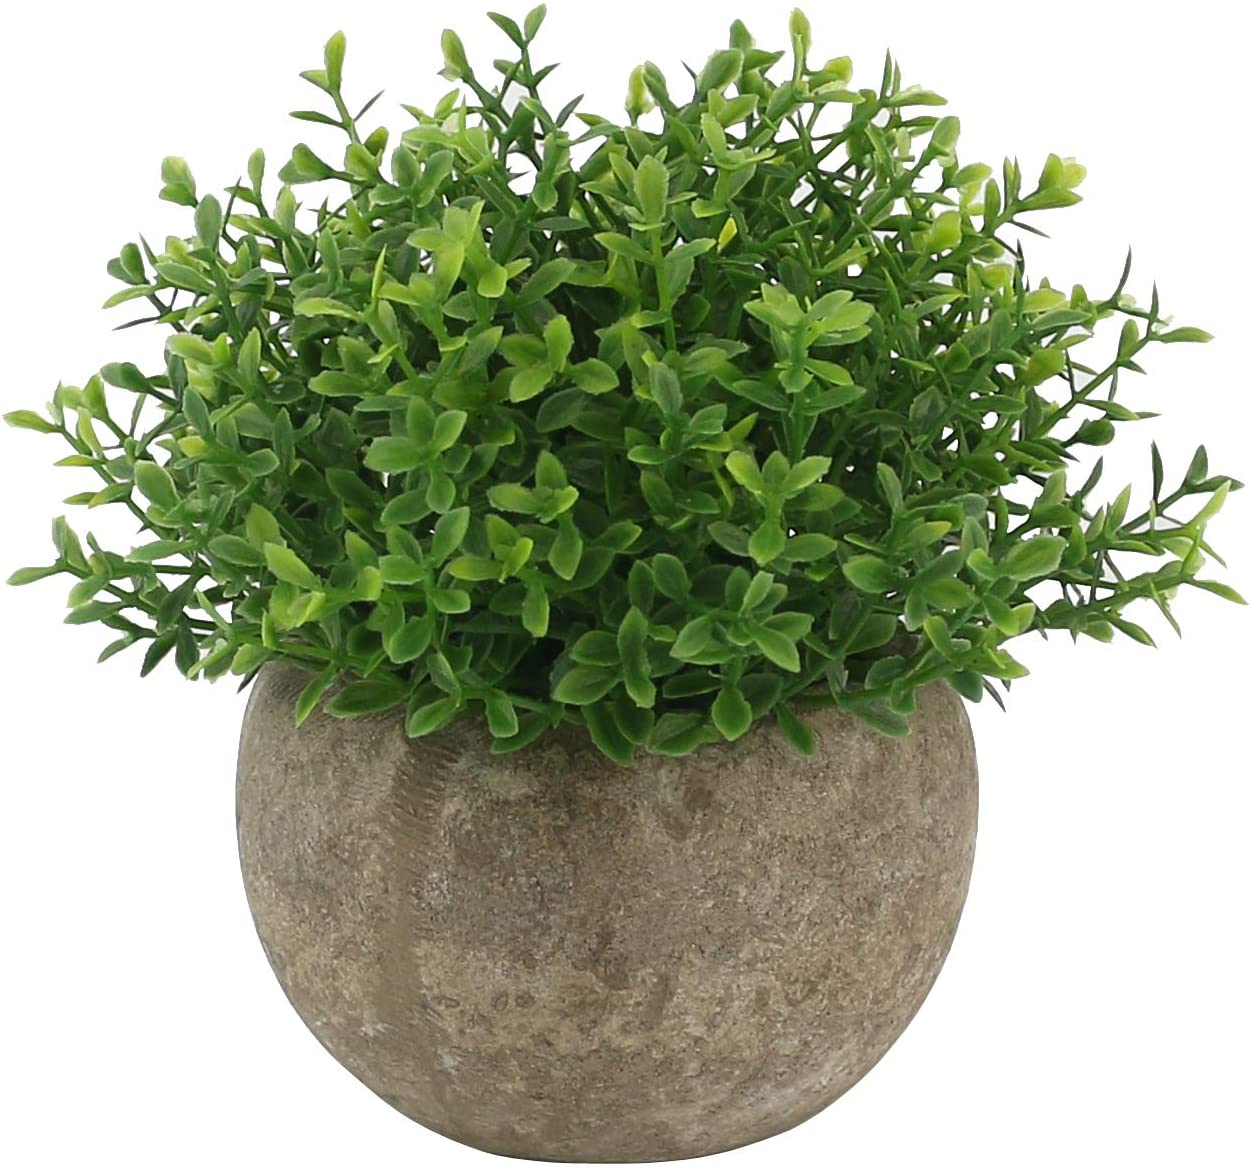 Ogrmar Mini Plastic Artificial Plants Grass in Pot/Small Artificial Faux Greenery/Mini Plants Topiary Shrubs Fake Plants for Bathroom, House Decorations (Green Leaf)